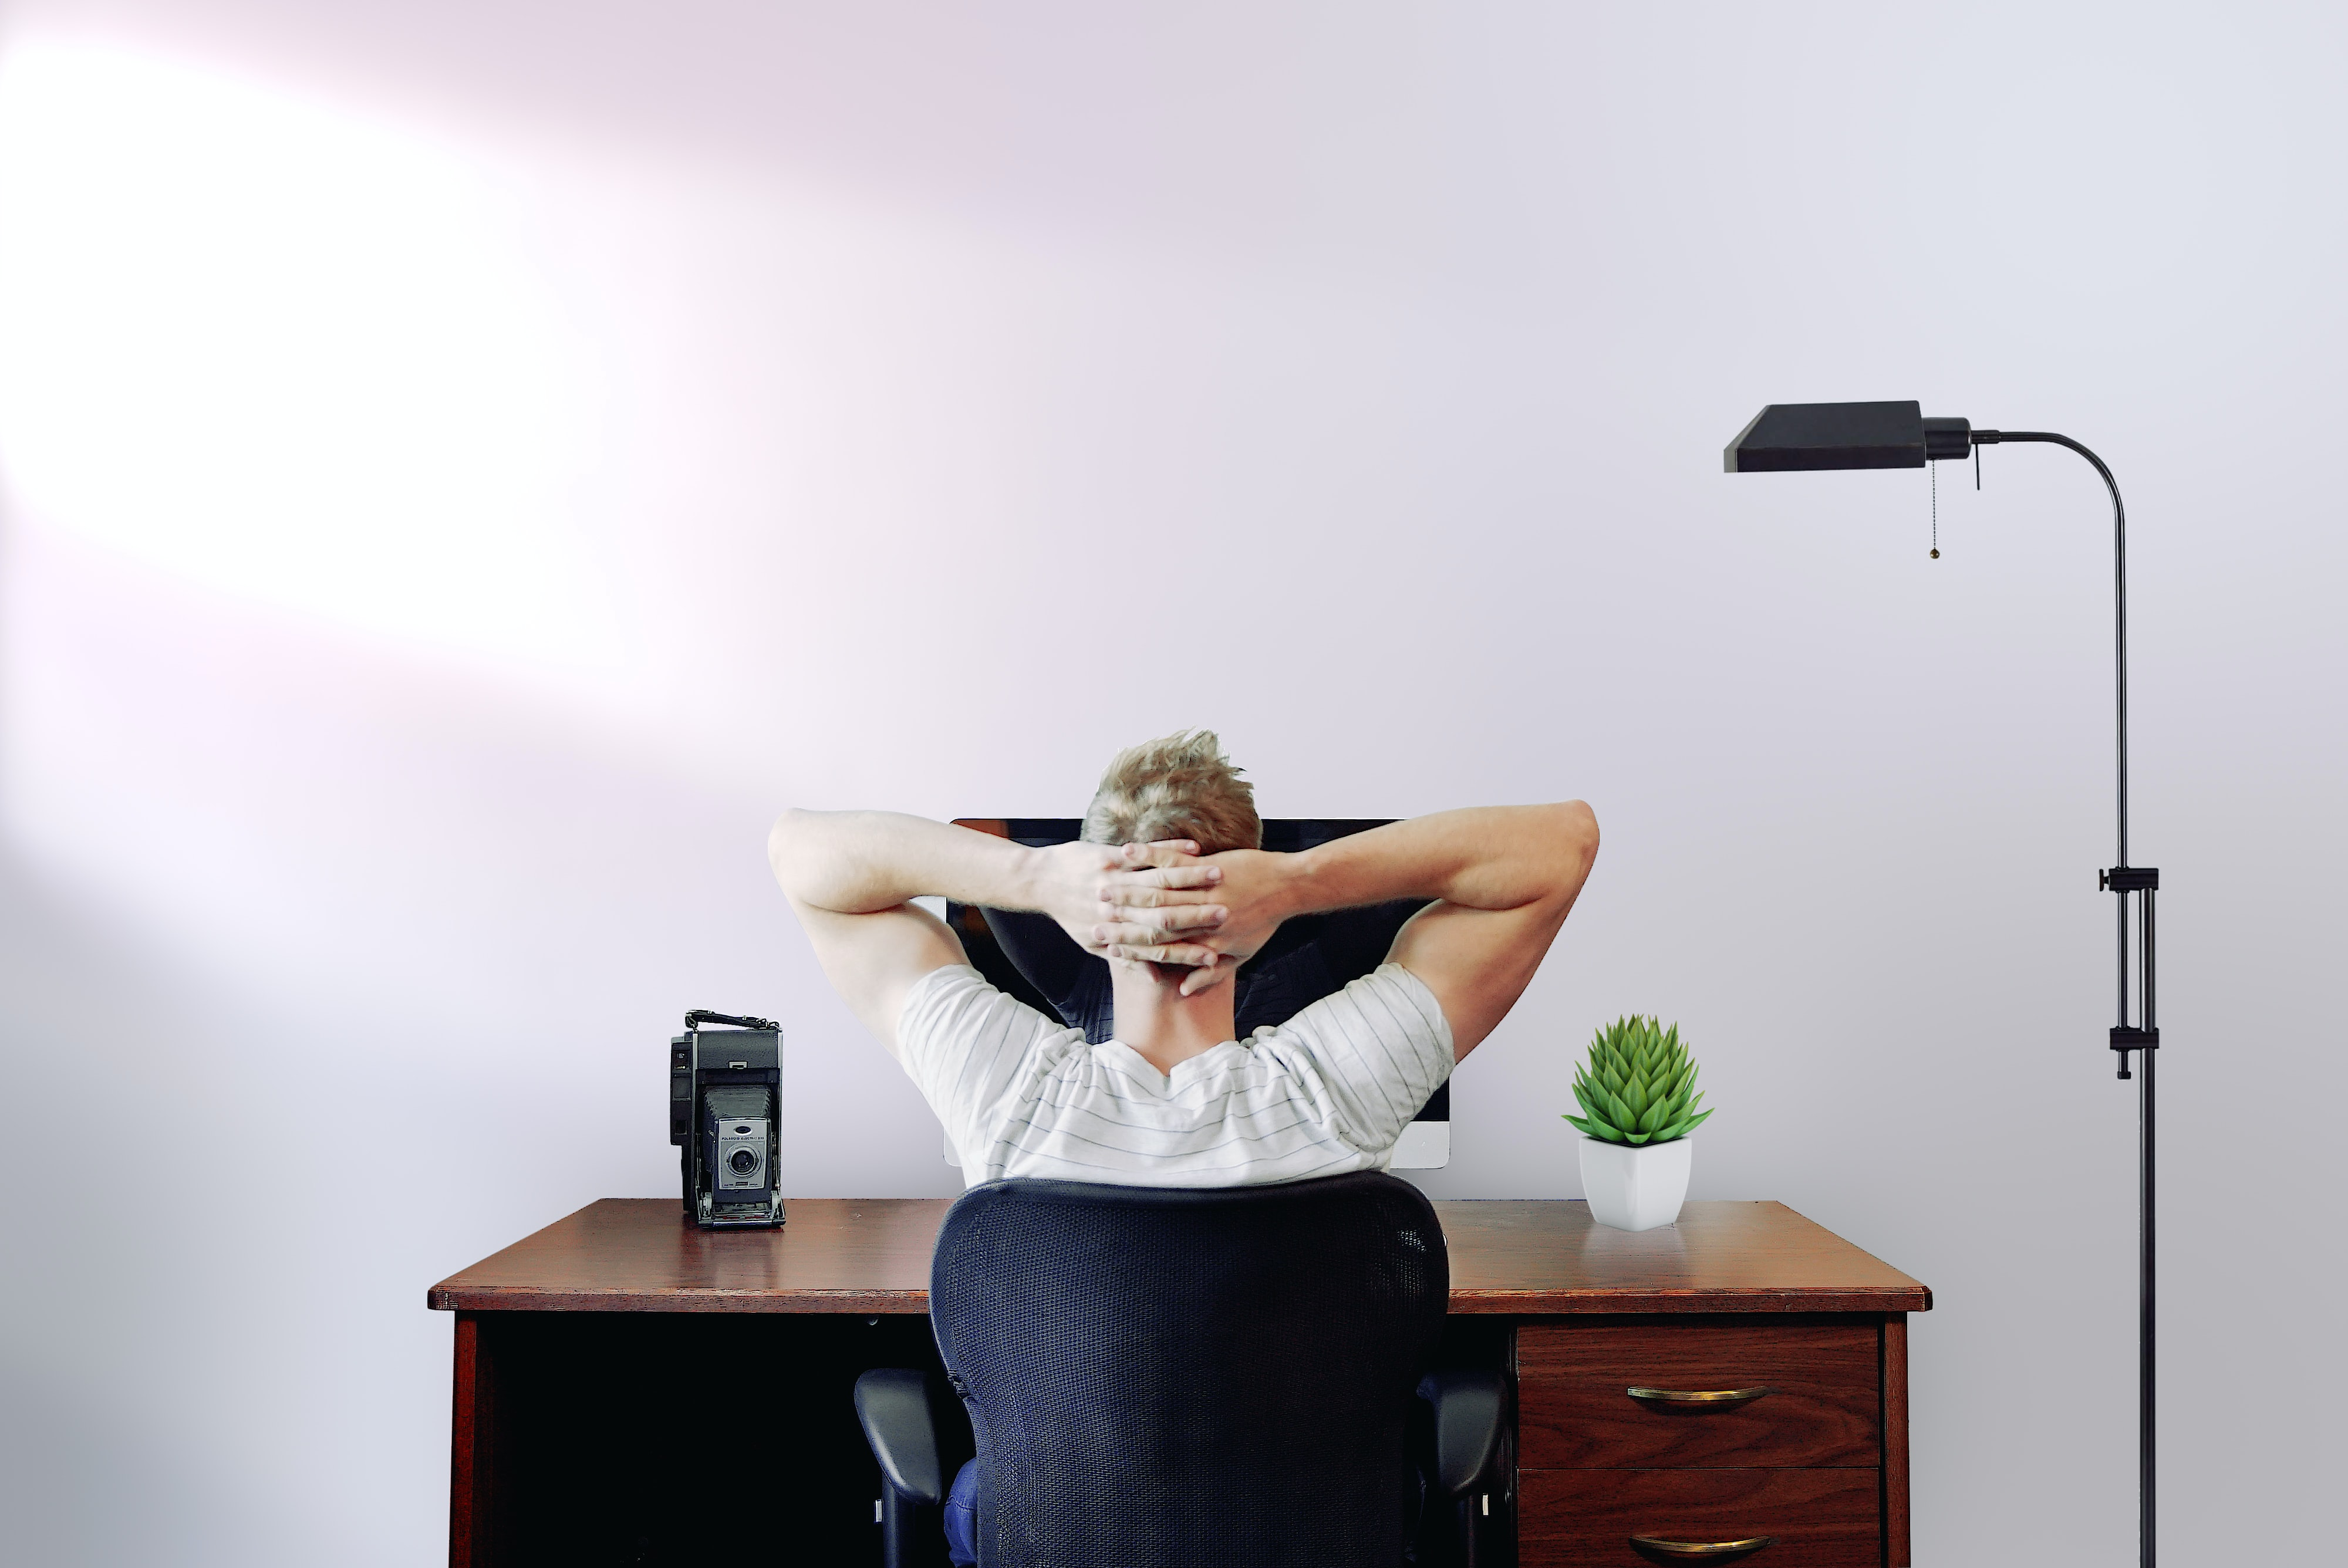 Trust is fundamental while managing remote teams. This image shows a man relaxing in front of his computer in front of a white wall.